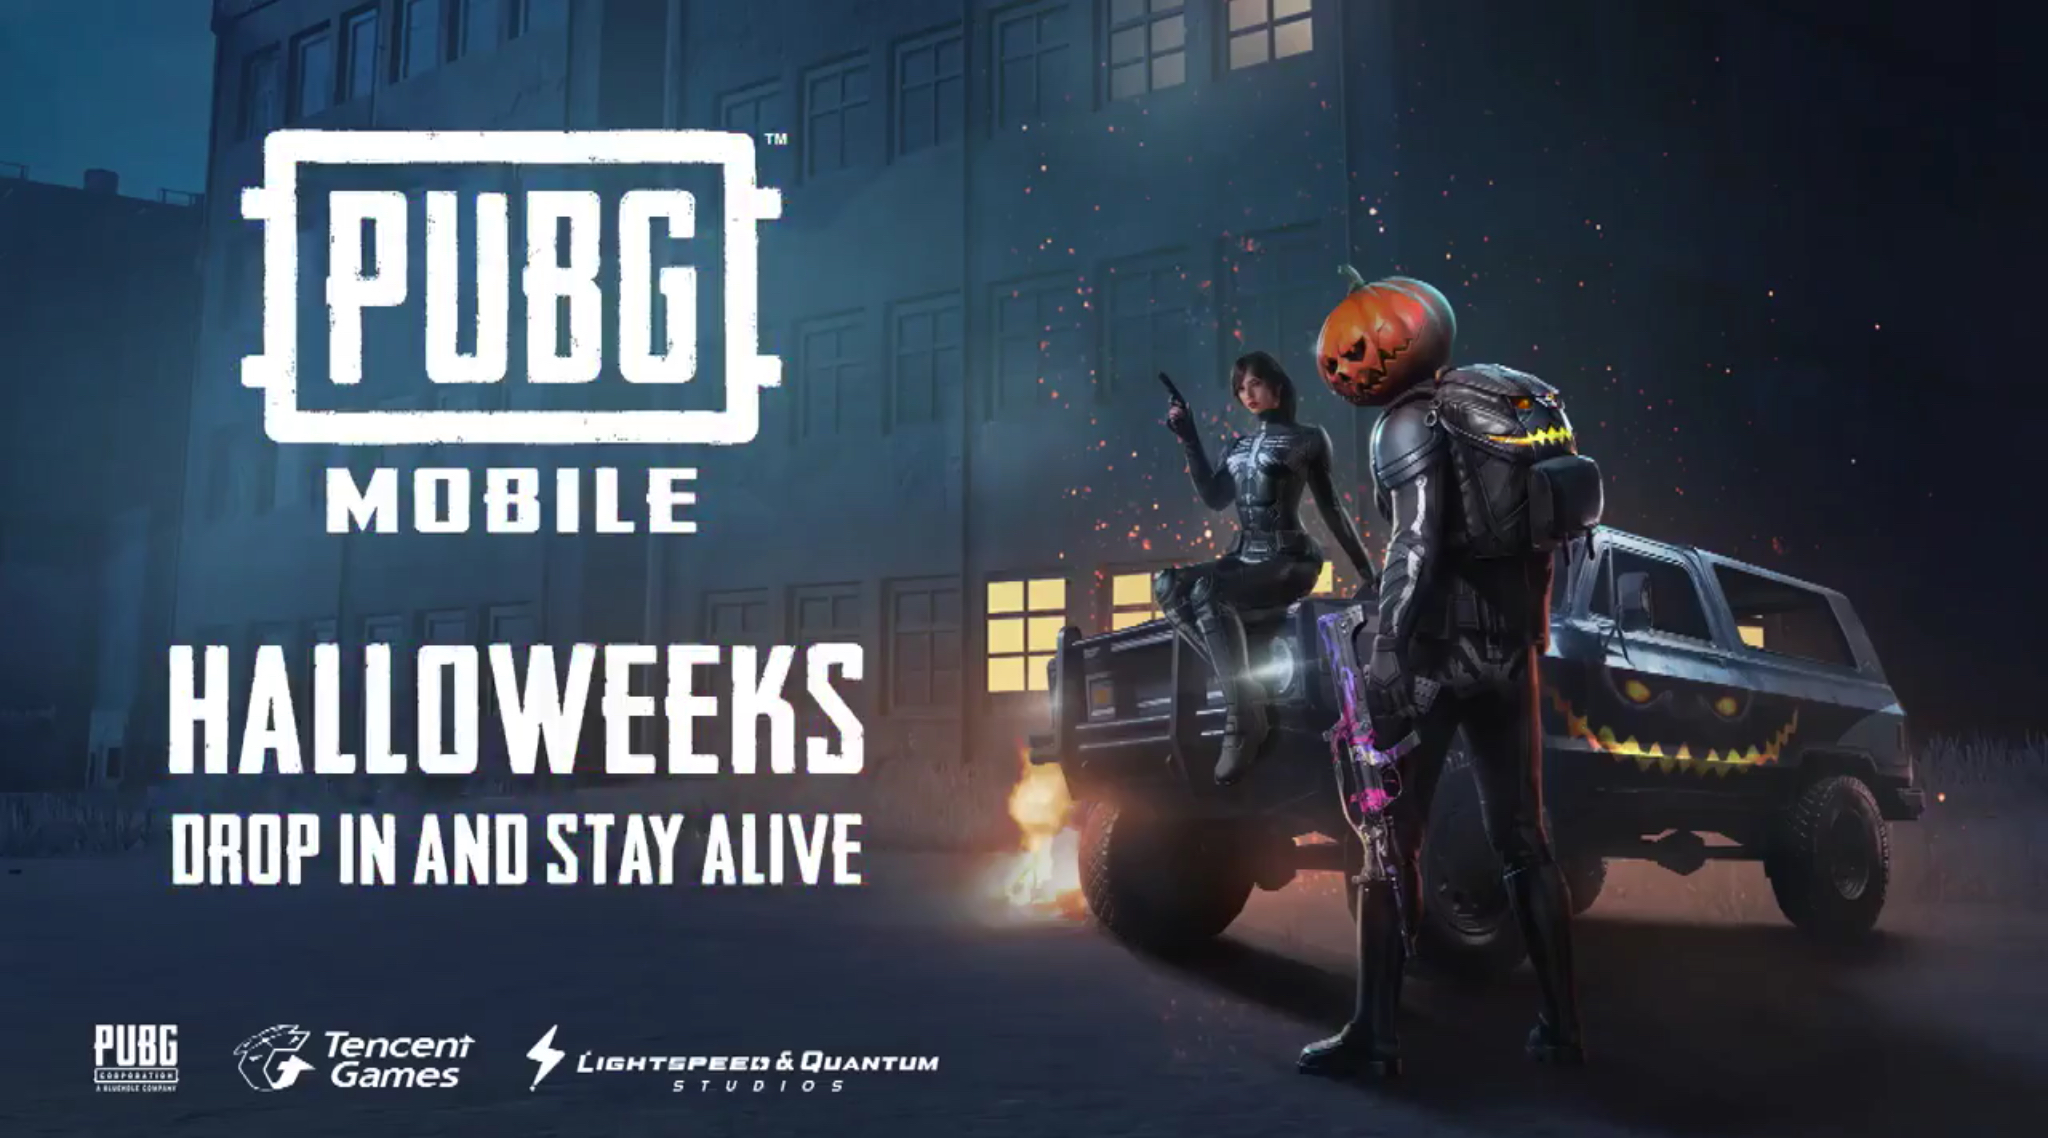 Pubg Mobile Update 0 4 0 Patch Notes Details Huge: 'PUBG Mobile' Patch 0.9.0 Has Finally Released Adding